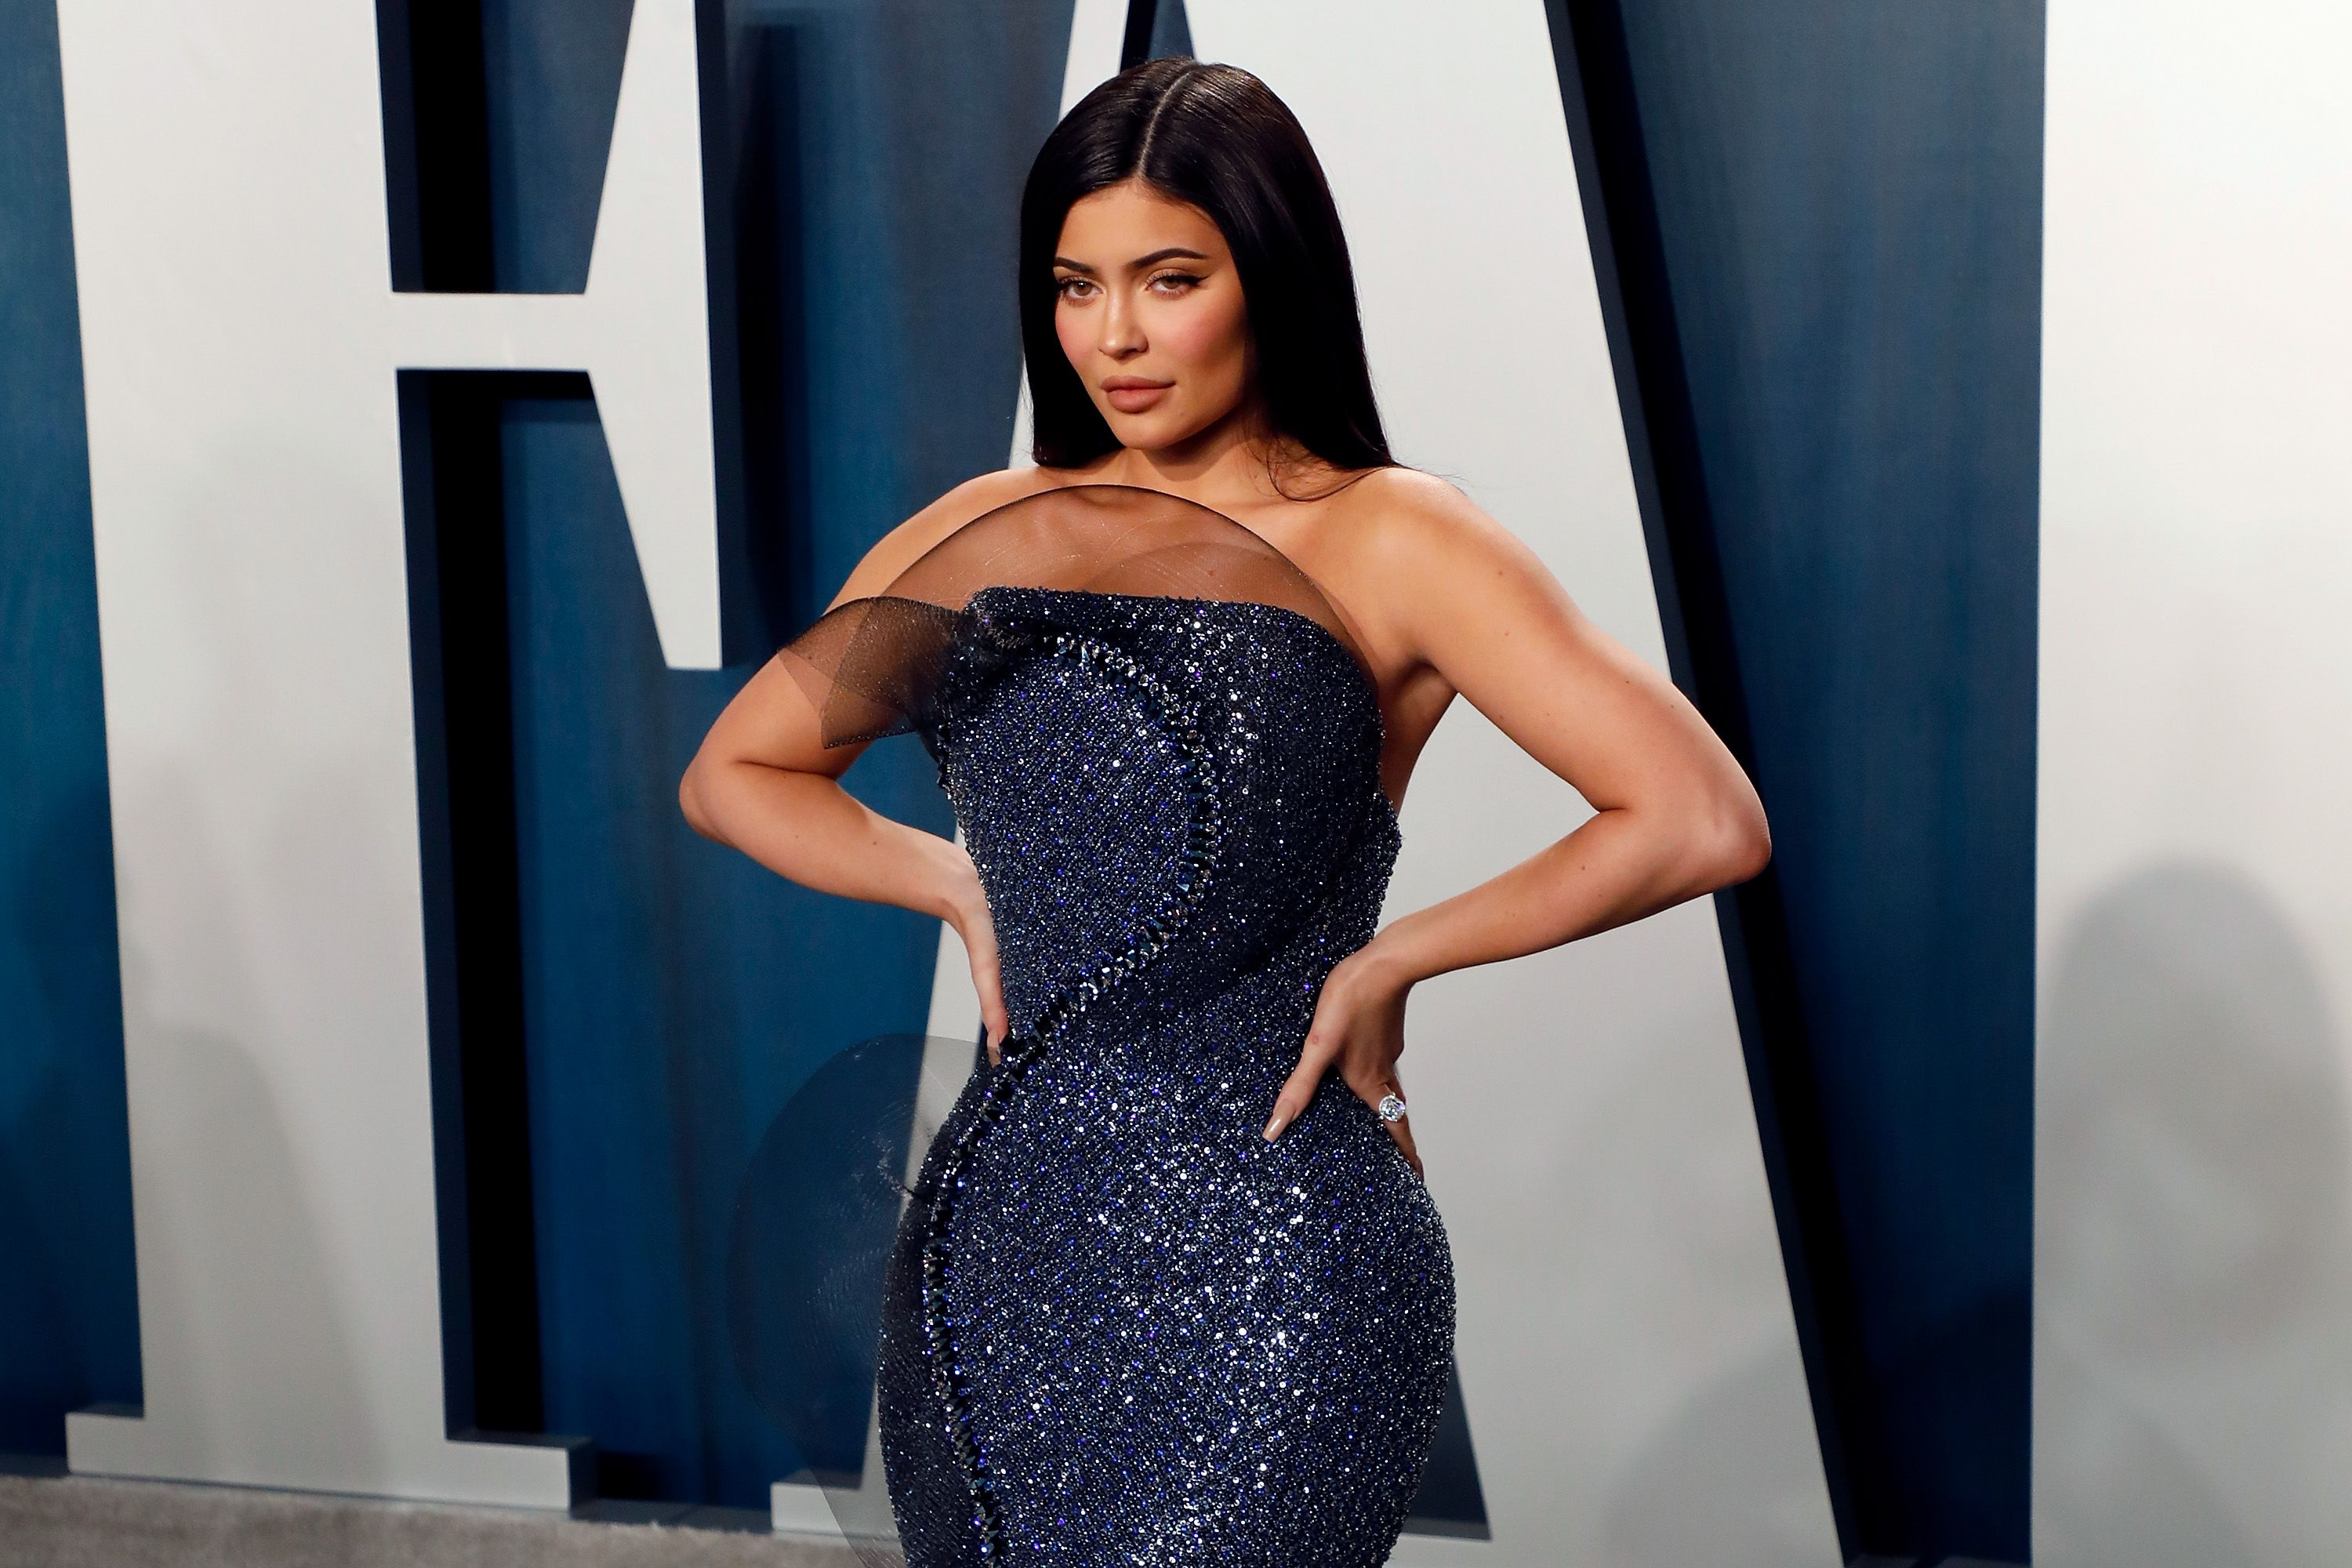 Kylie Jenner at a Vanity Fair event